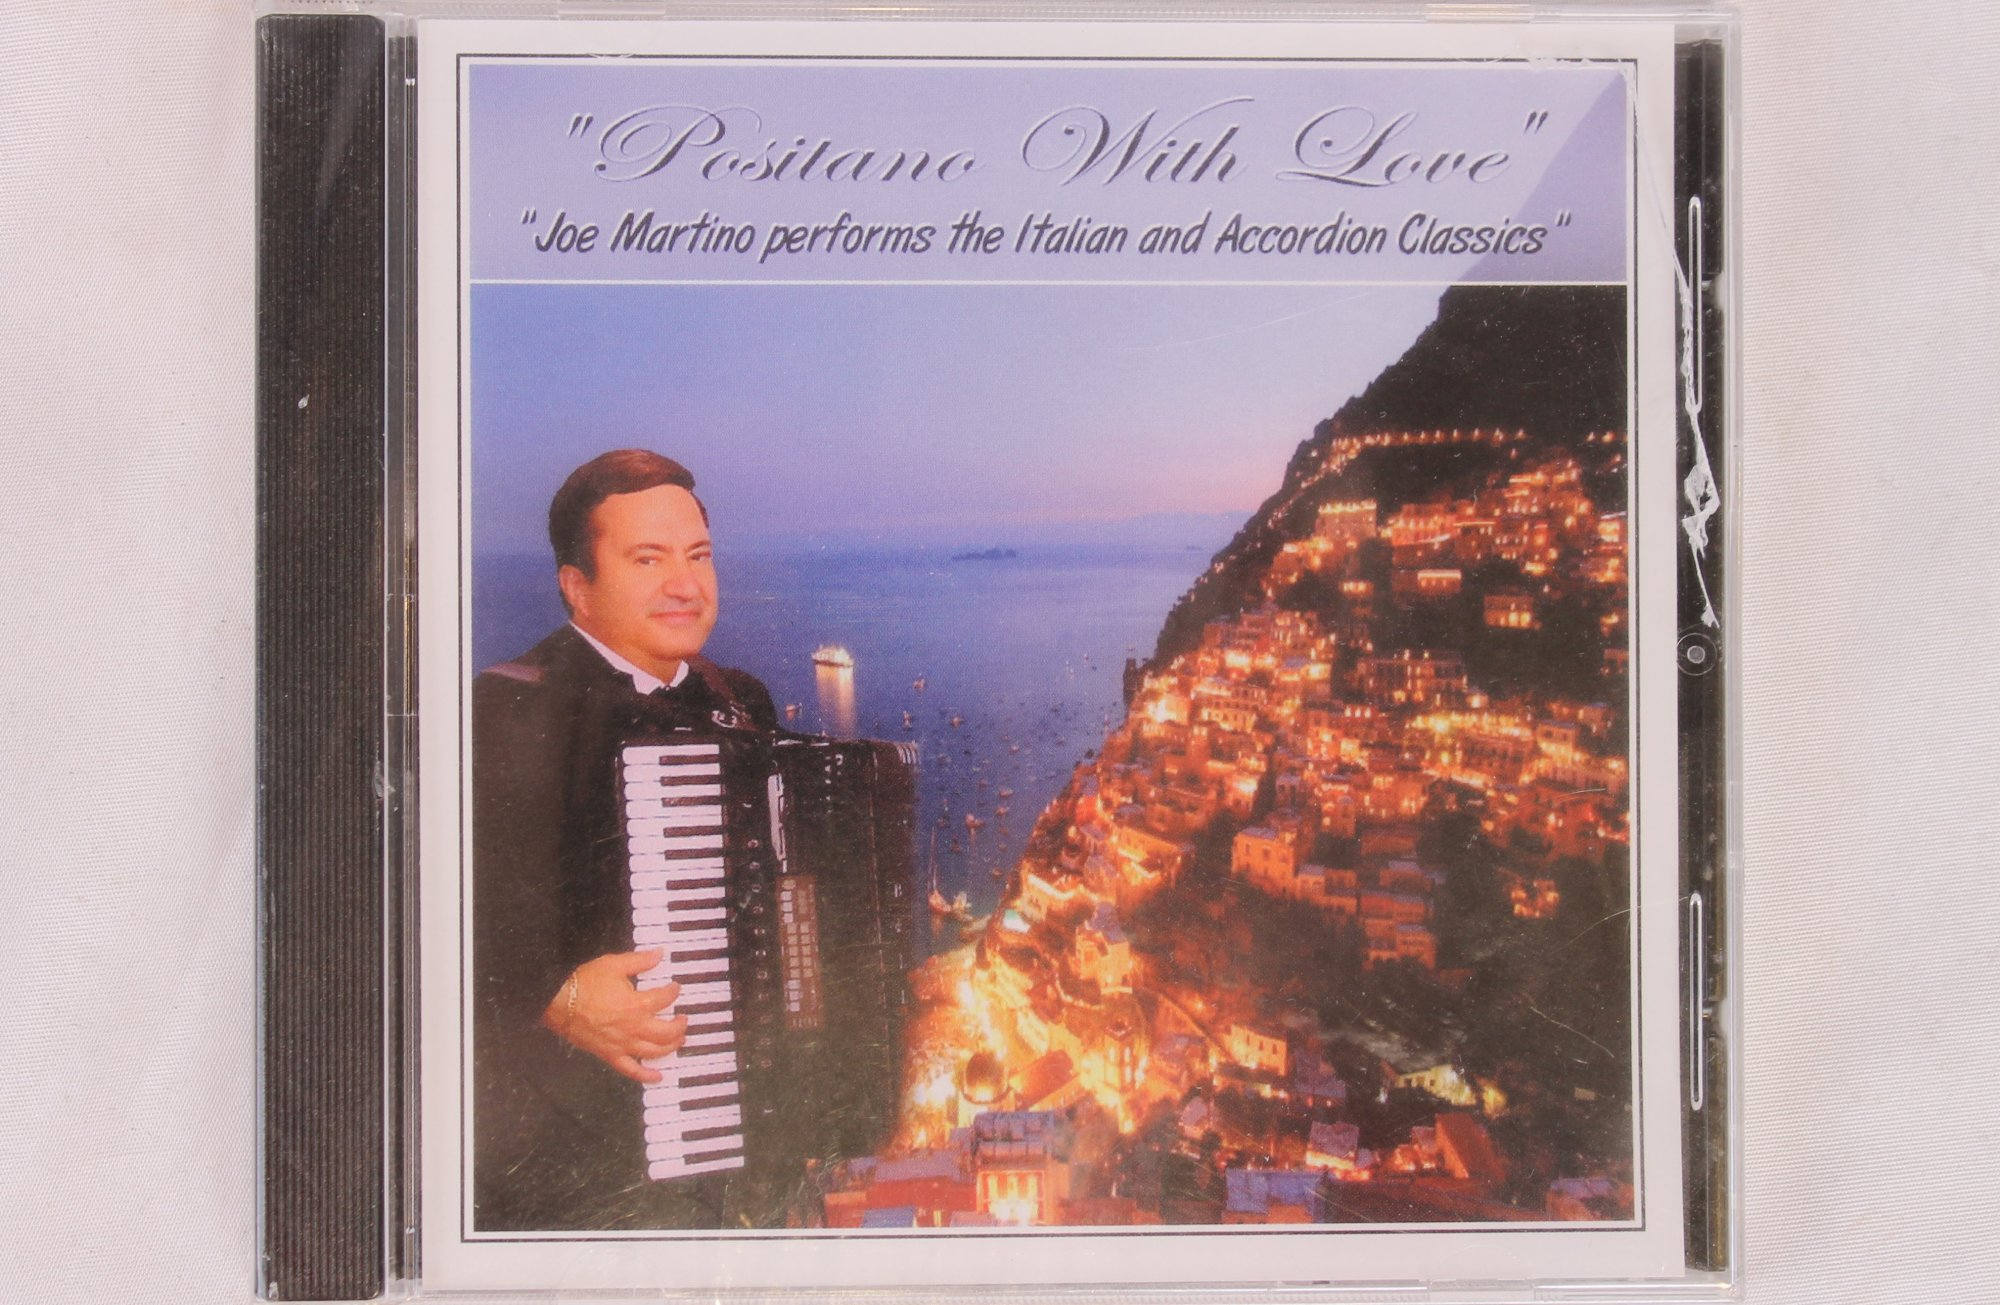 Positano with Love: Joe Martino performs the Italian and Accordion Classics (CD)